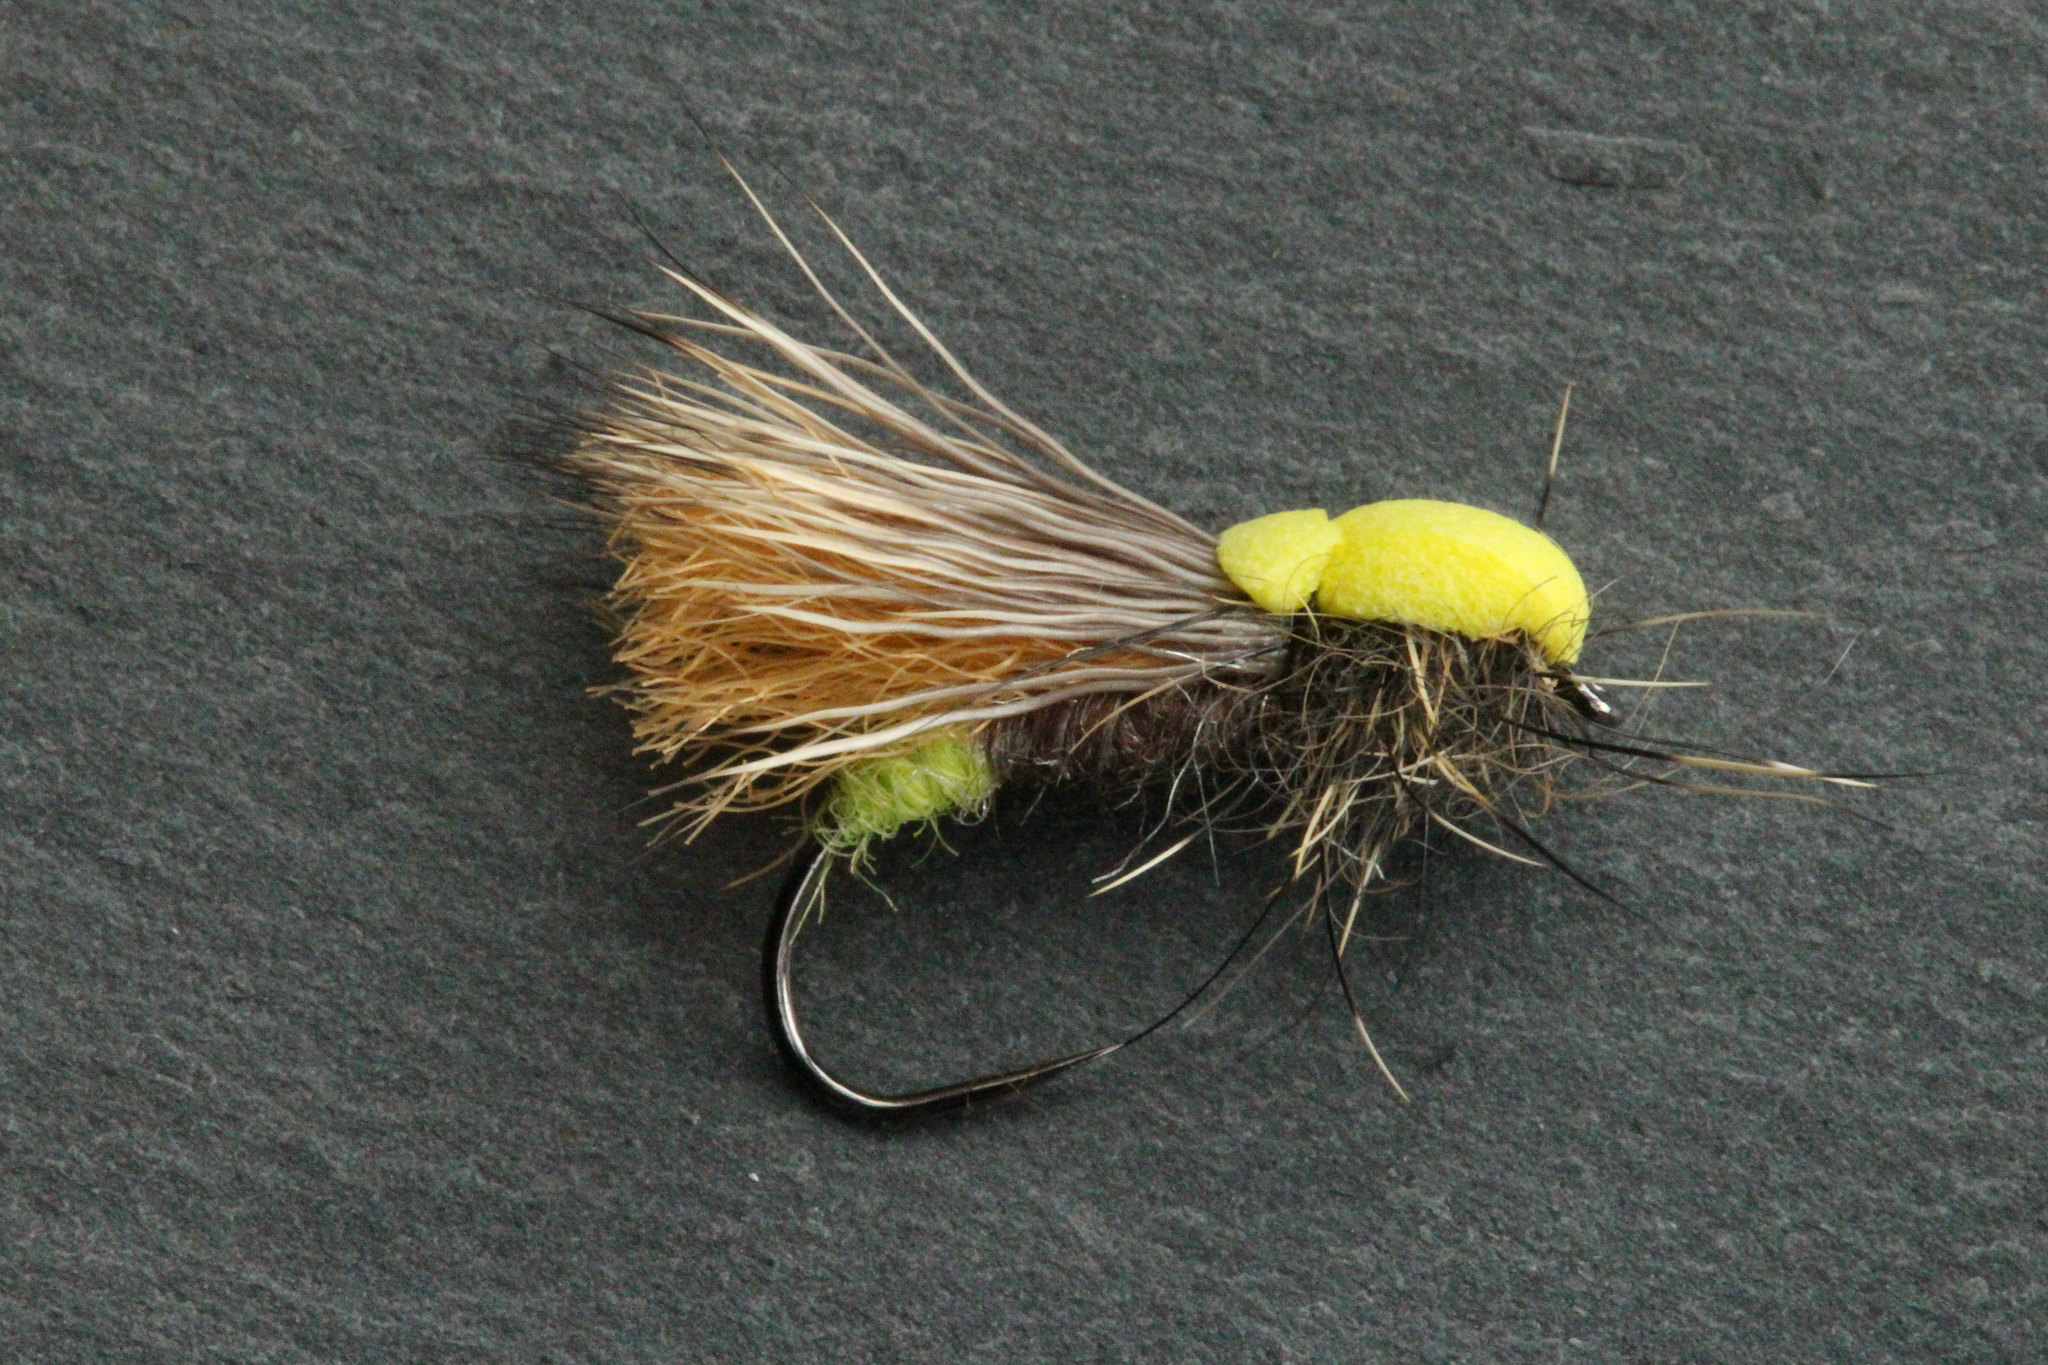 Balloon caddis varant